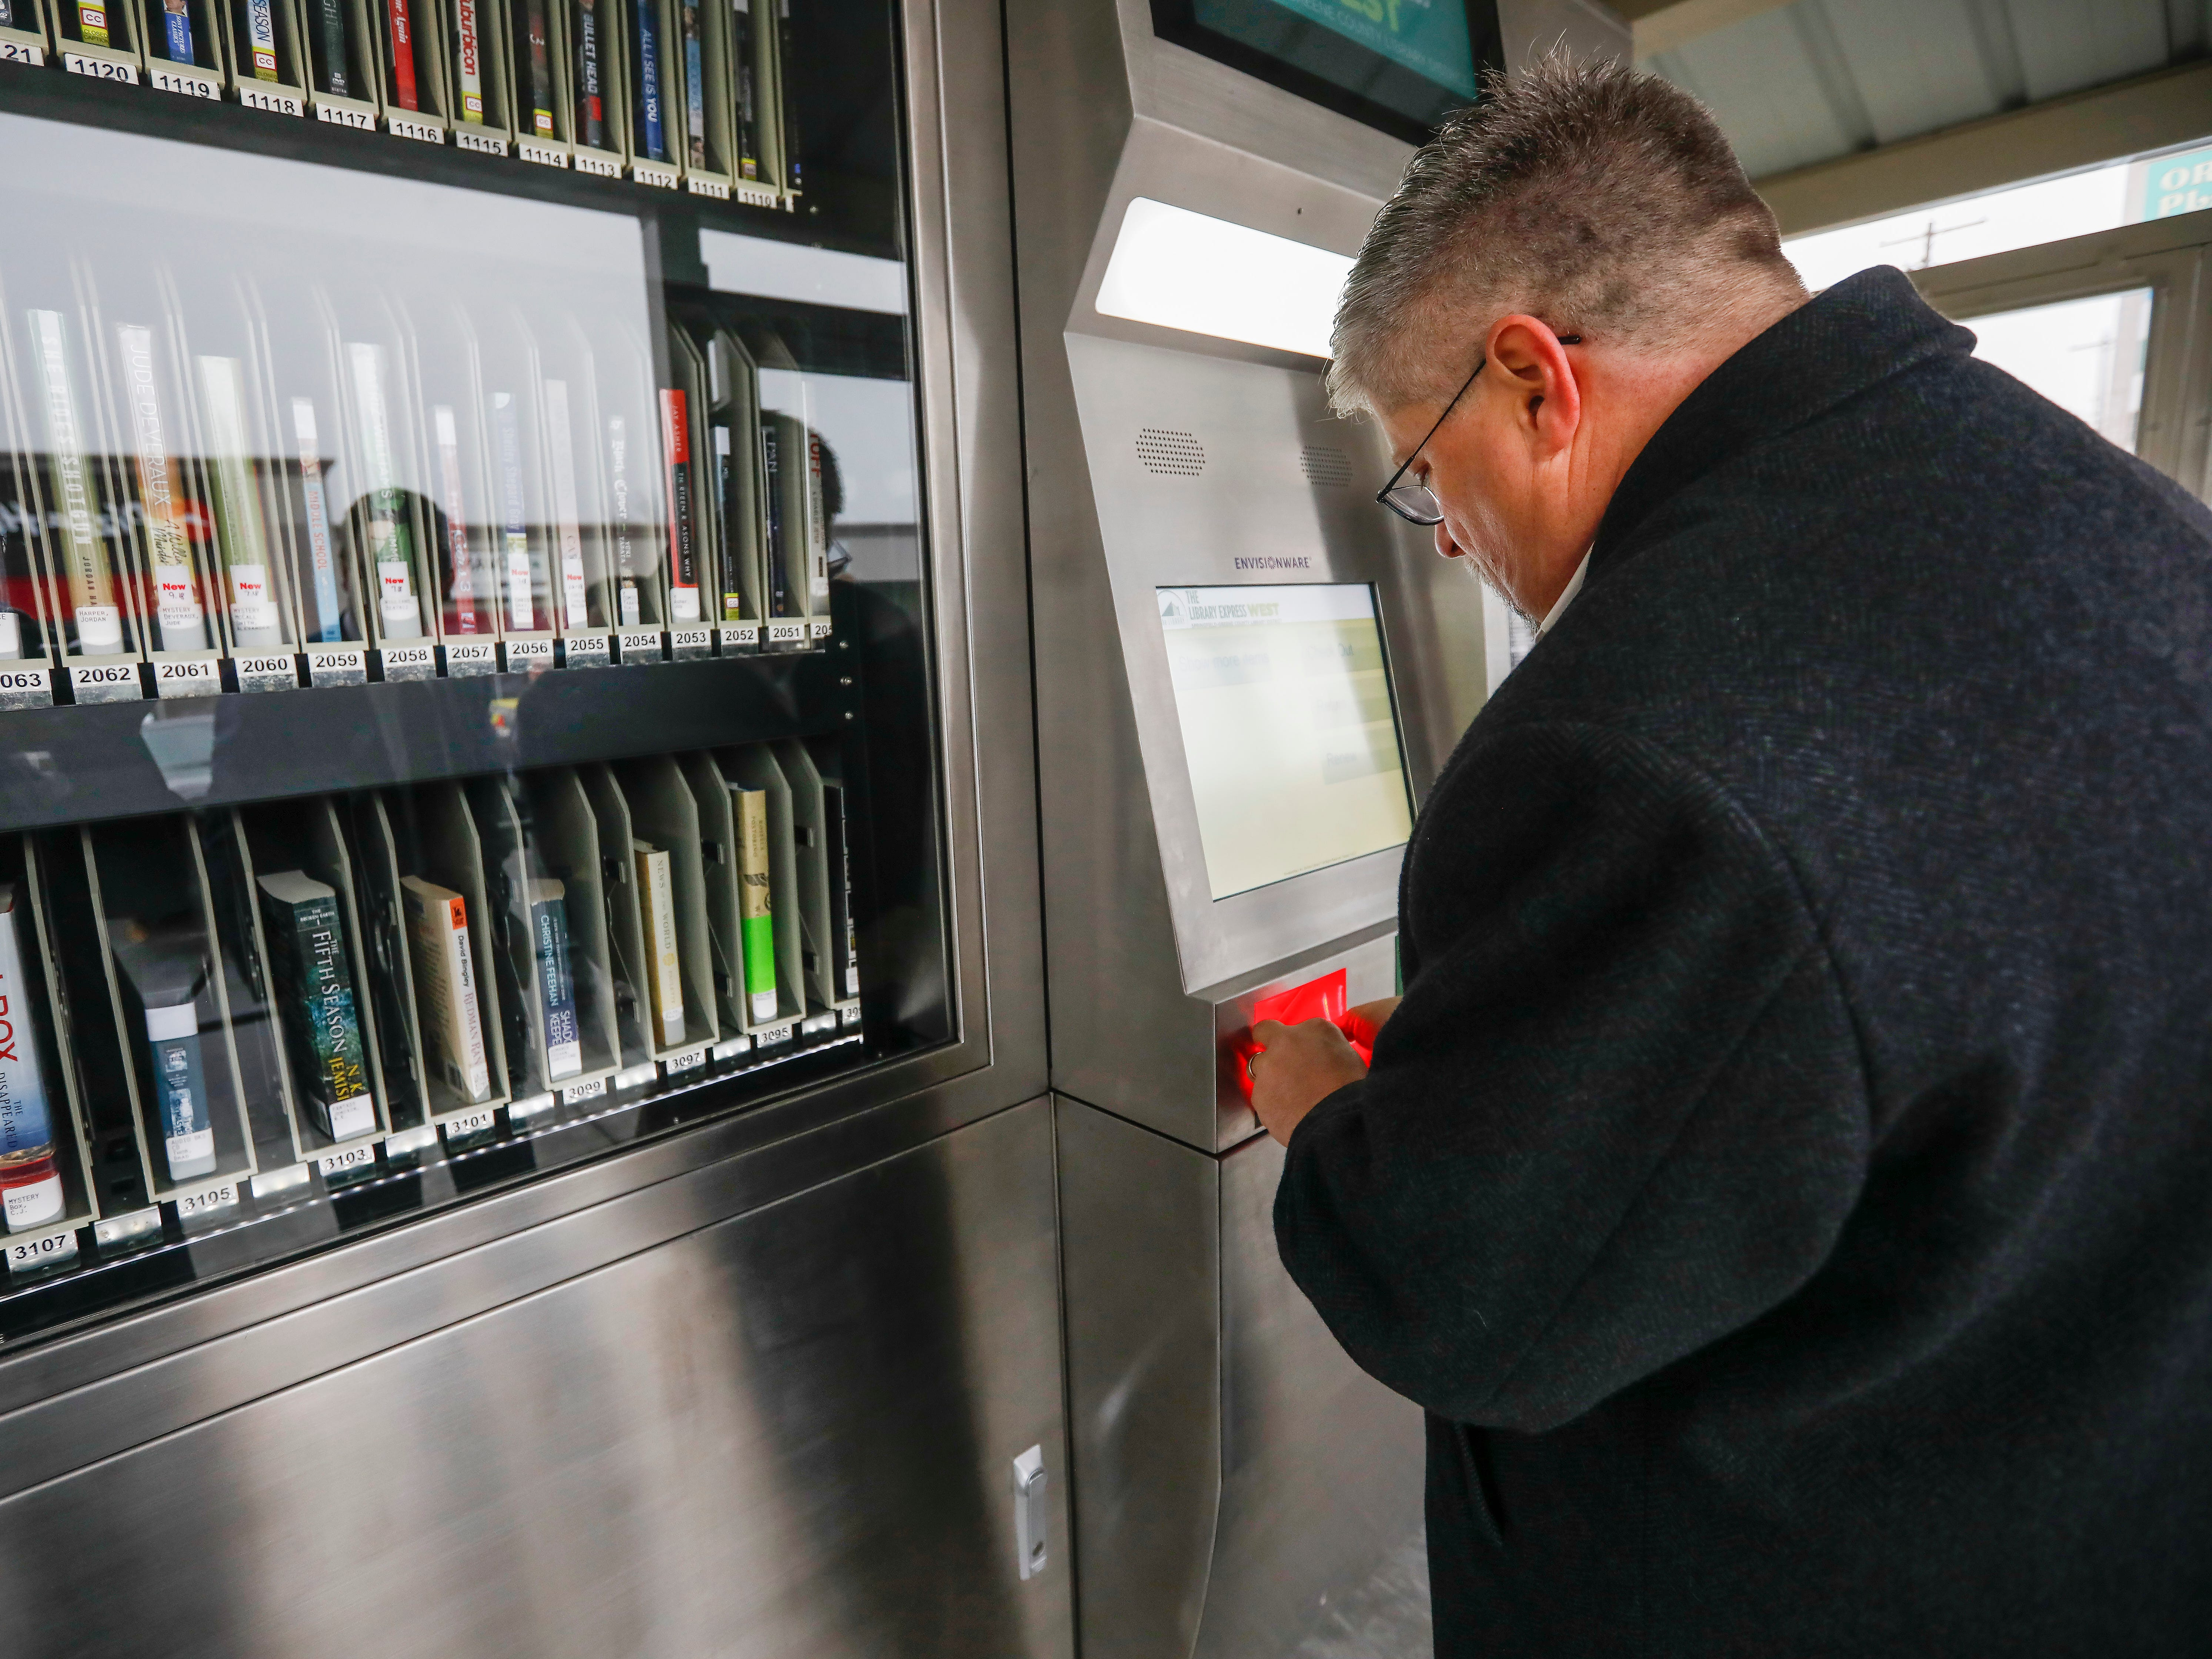 Don Chenevert, a member of the Springfield-Greene County Library Board of Trustees, scans his library card at the new Library Express West located at 3872 W. Chestnut Expressway in Orchard Plaza on Wednesday, Feb. 6, 2019.